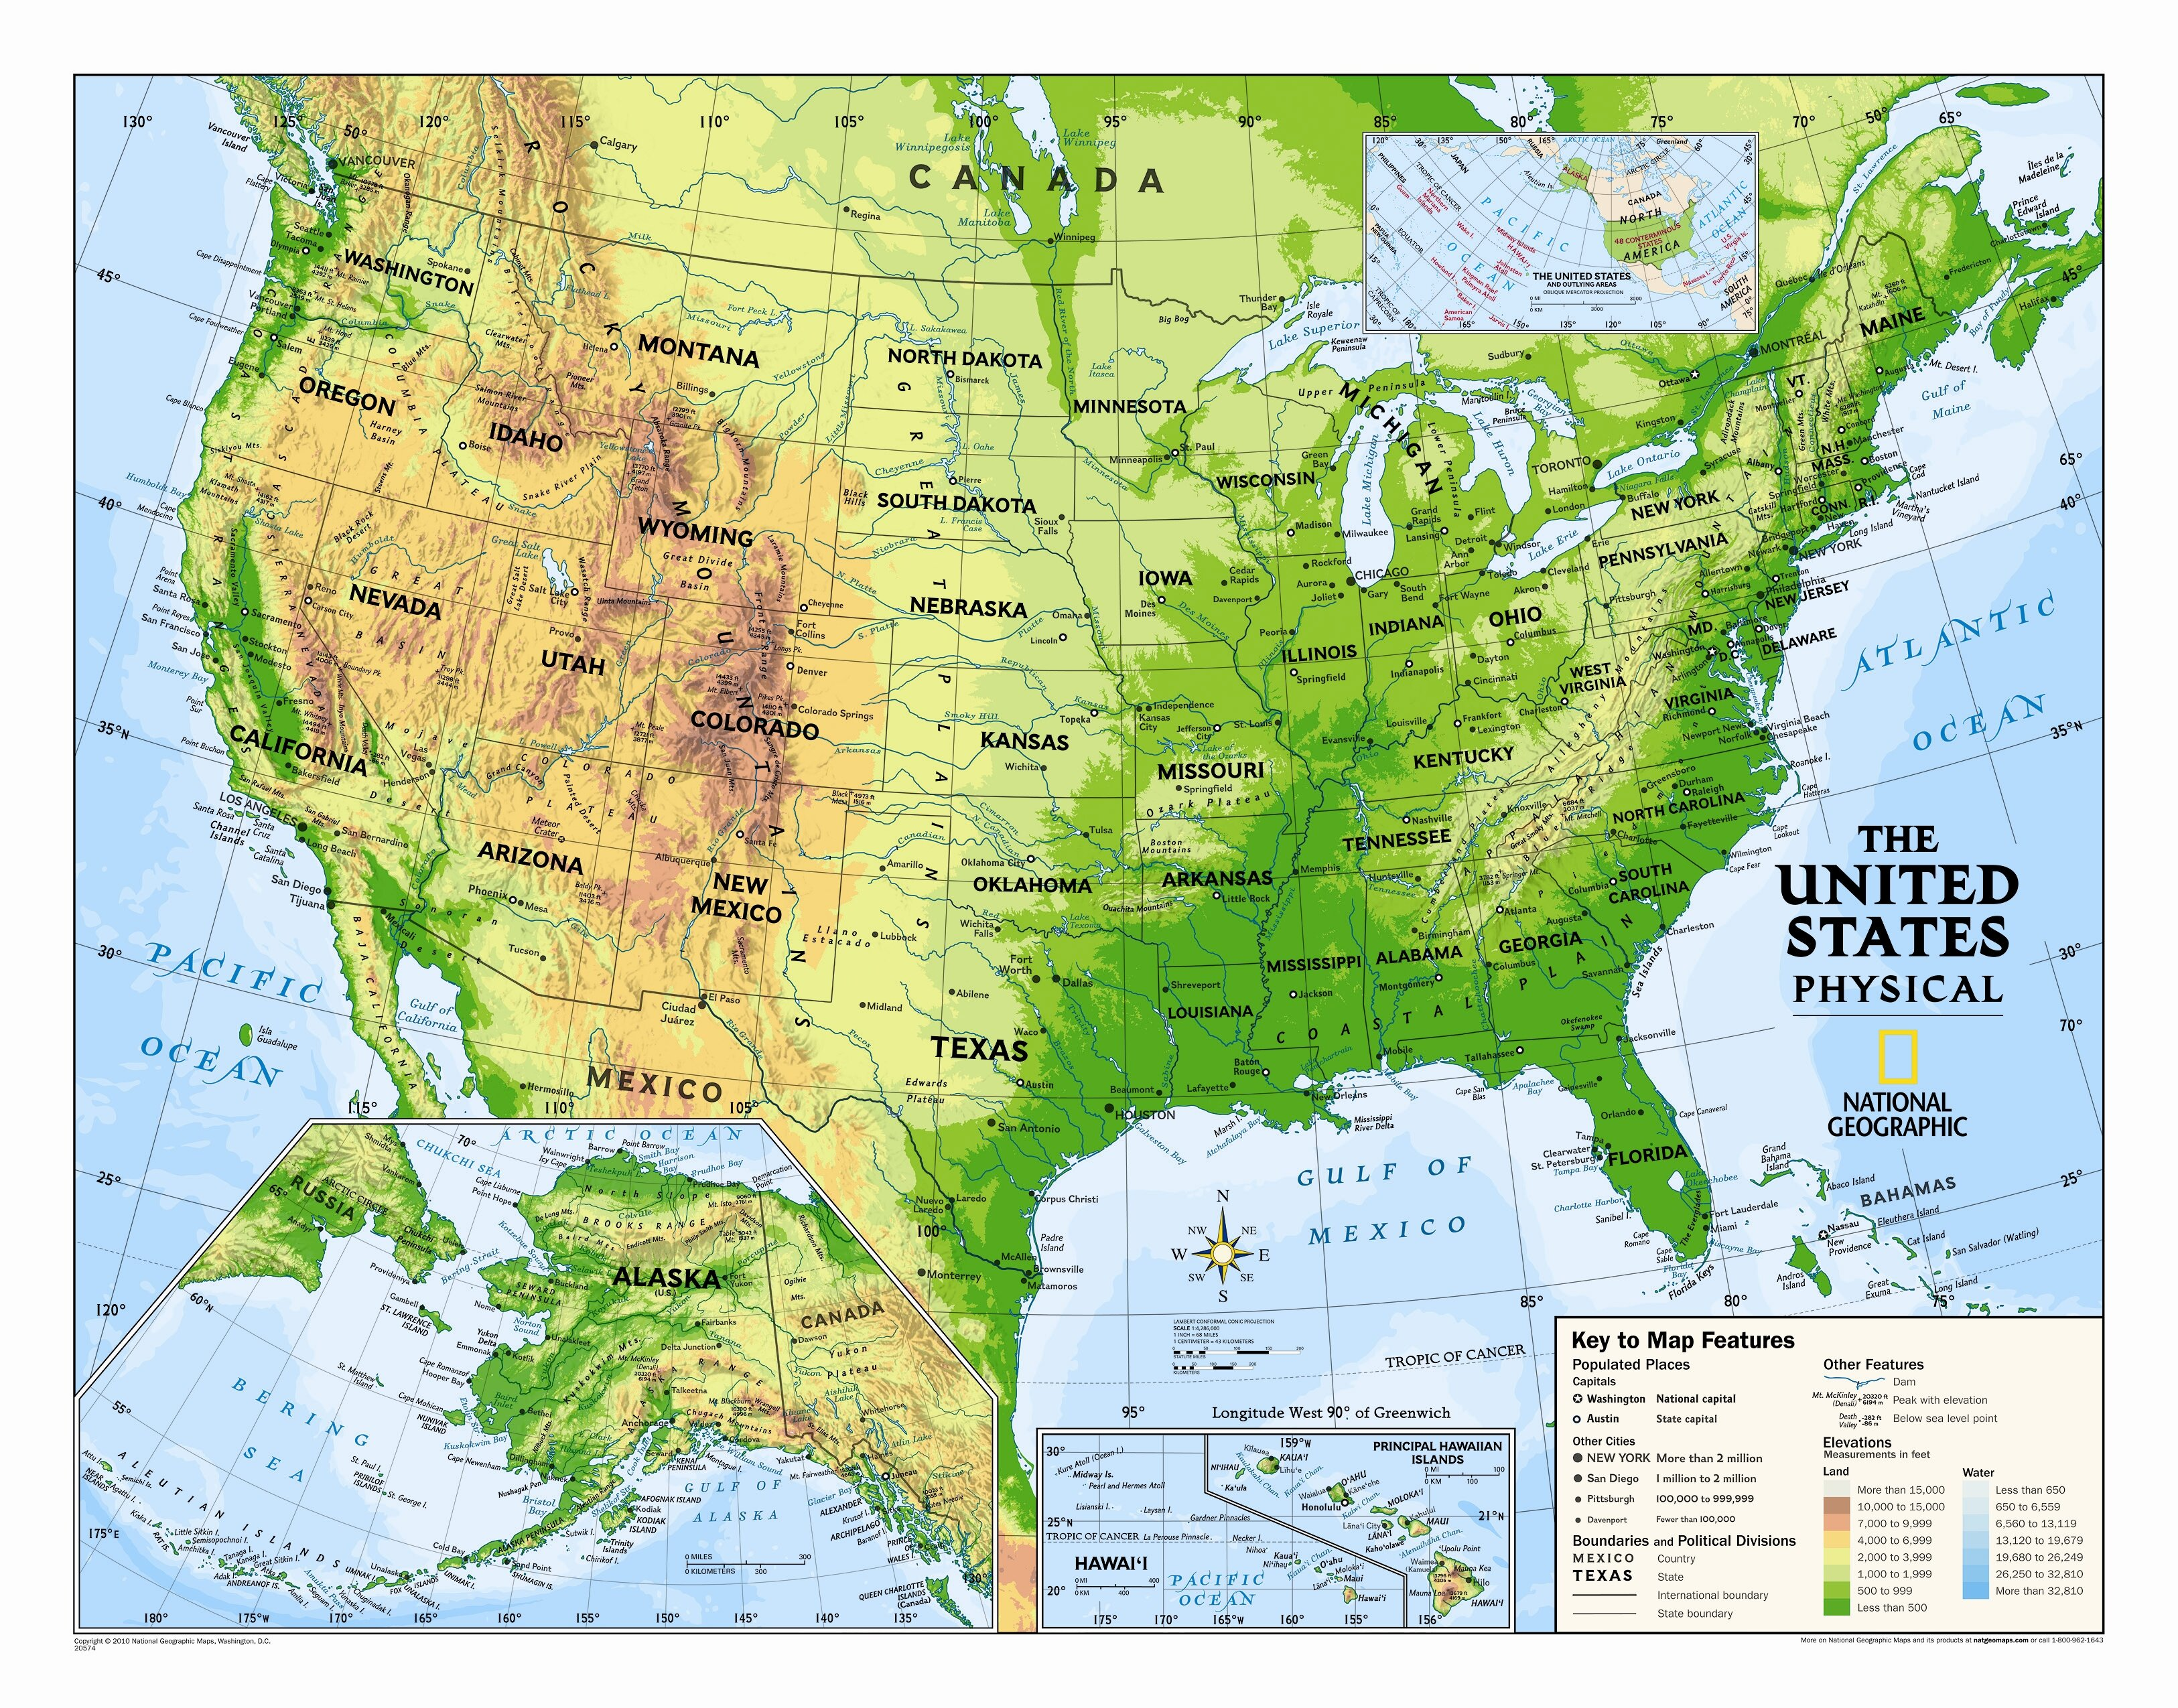 Kids Physical USA Wall Map (Graded 4-12) on united states maps usa, atlas of usa, outline of usa, new jersey usa, southeast usa, globe of usa, travel usa, satellite of usa, union of usa, world map usa, states of usa, geography usa, mountains usa, mapquest of usa, flag of usa, drawing of usa, road map usa, city map usa, history usa, physical map usa,